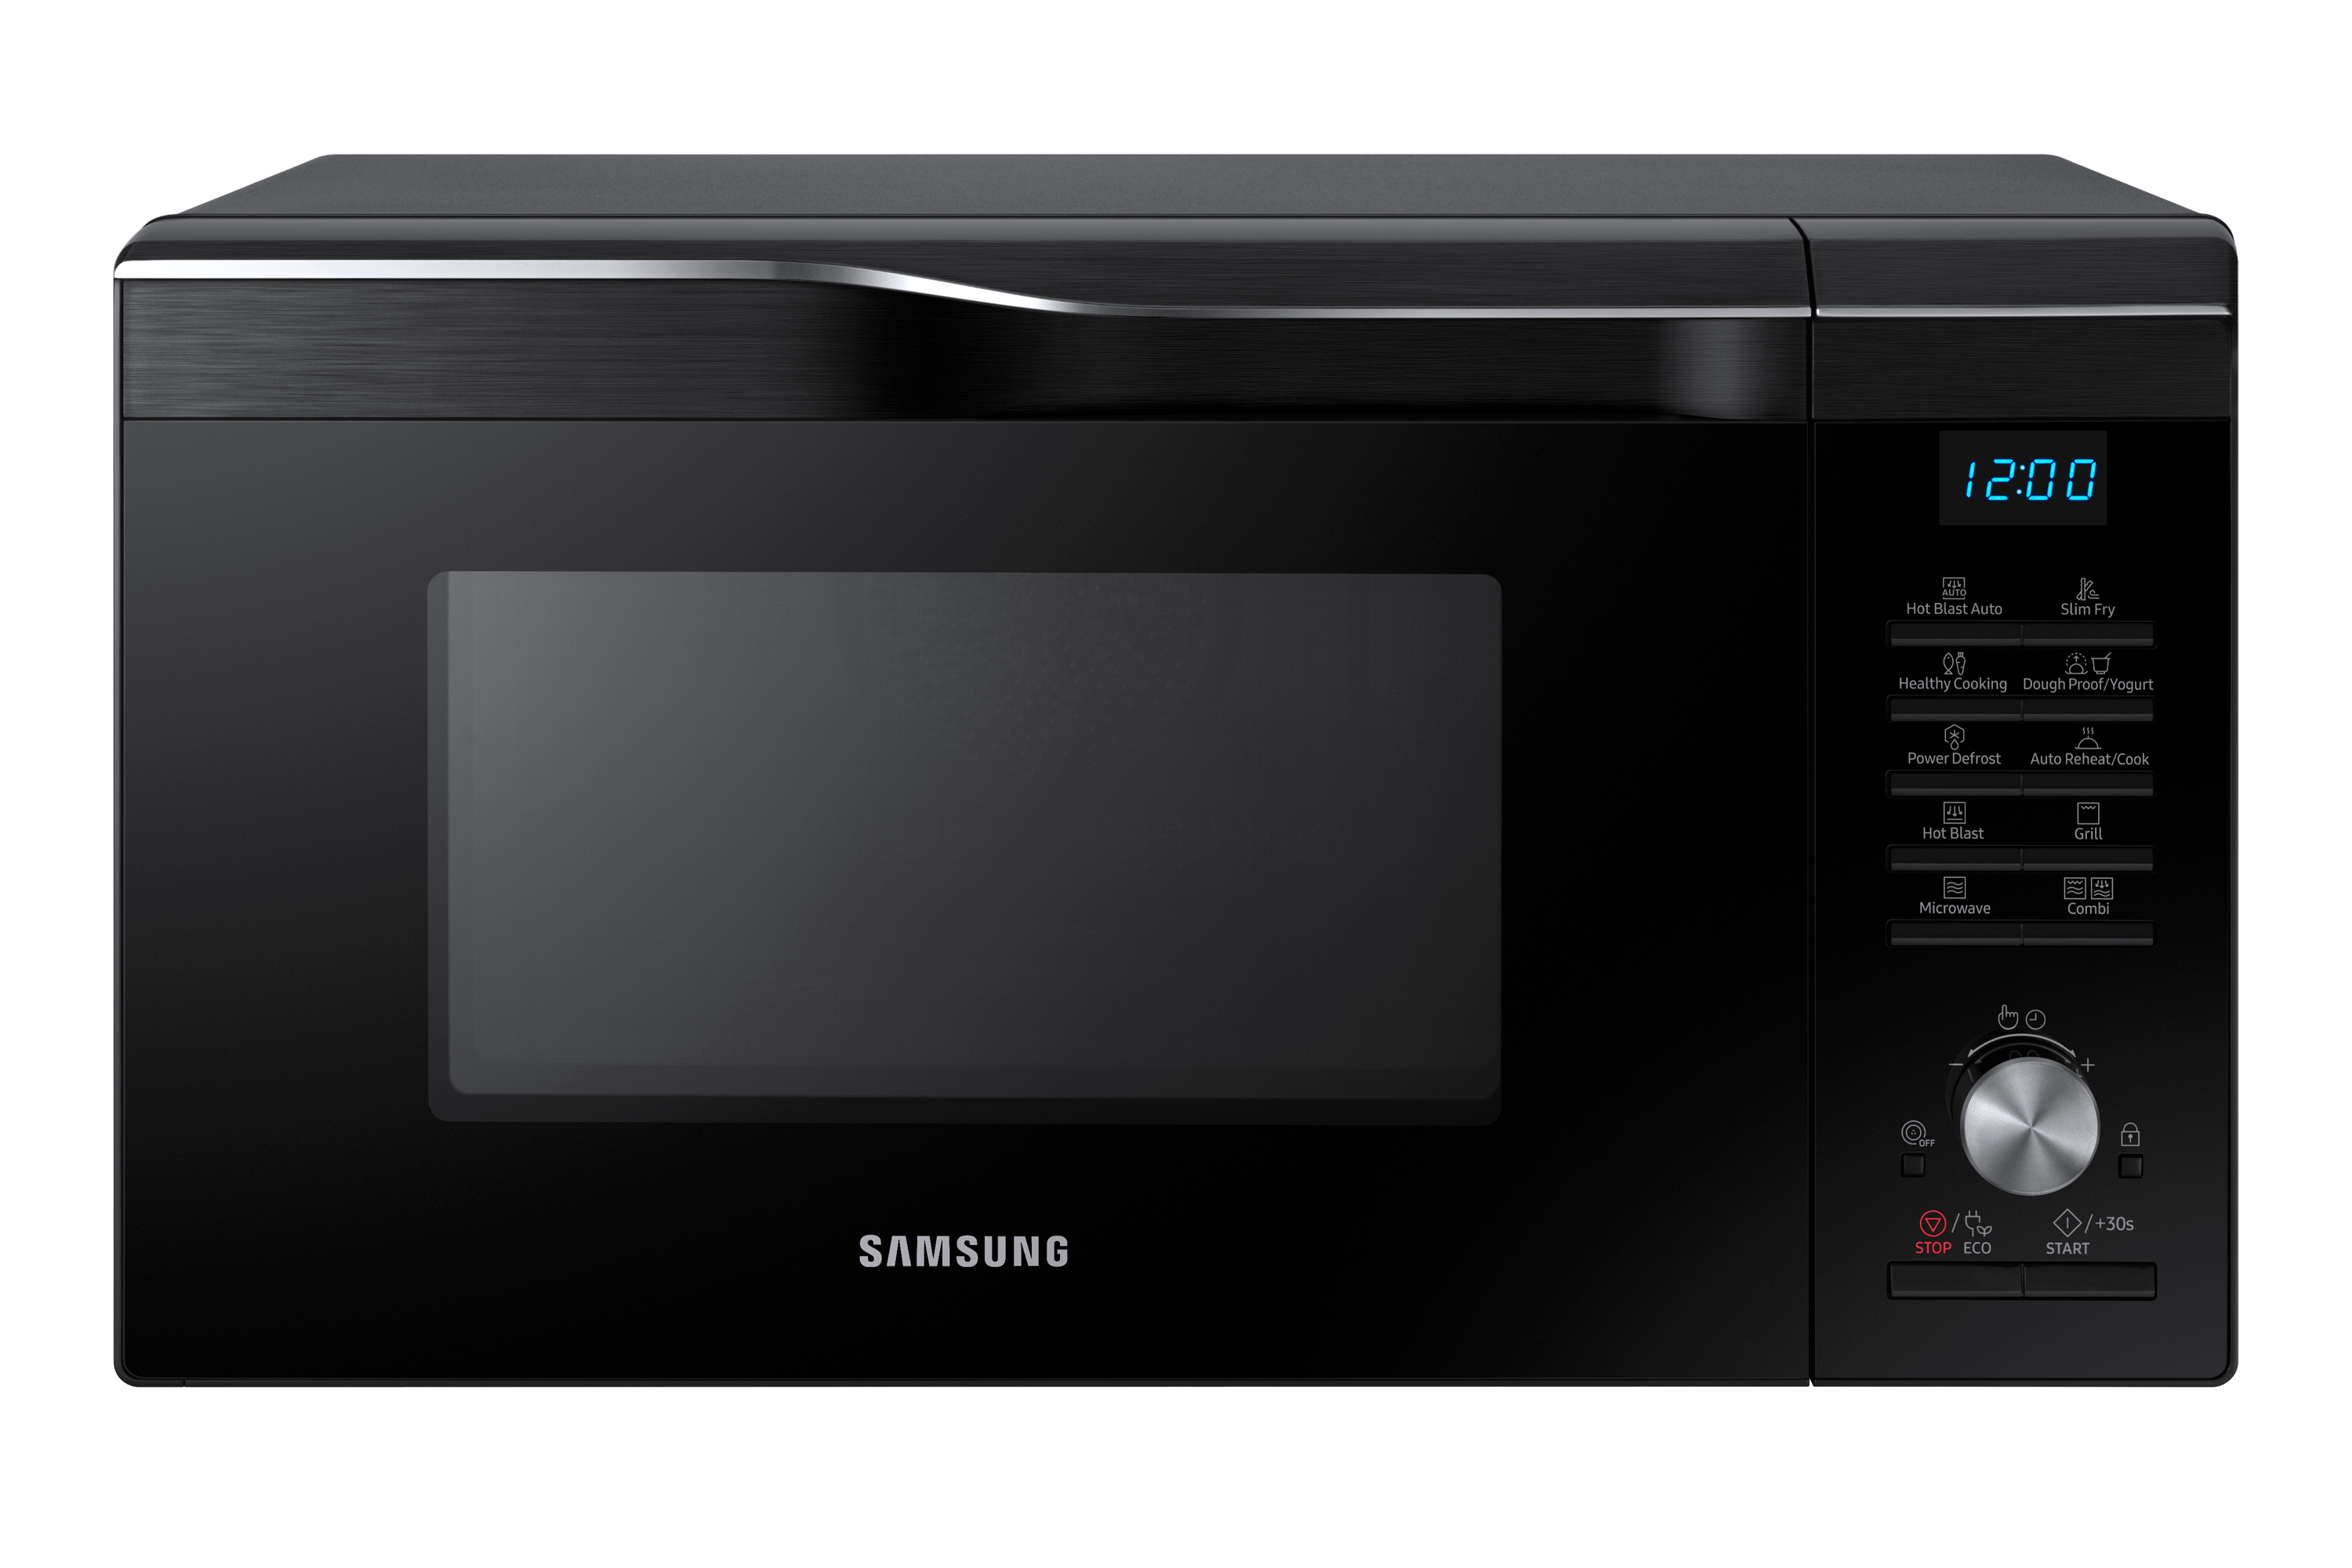 easy view convection microwave oven with hotblast technology 28l